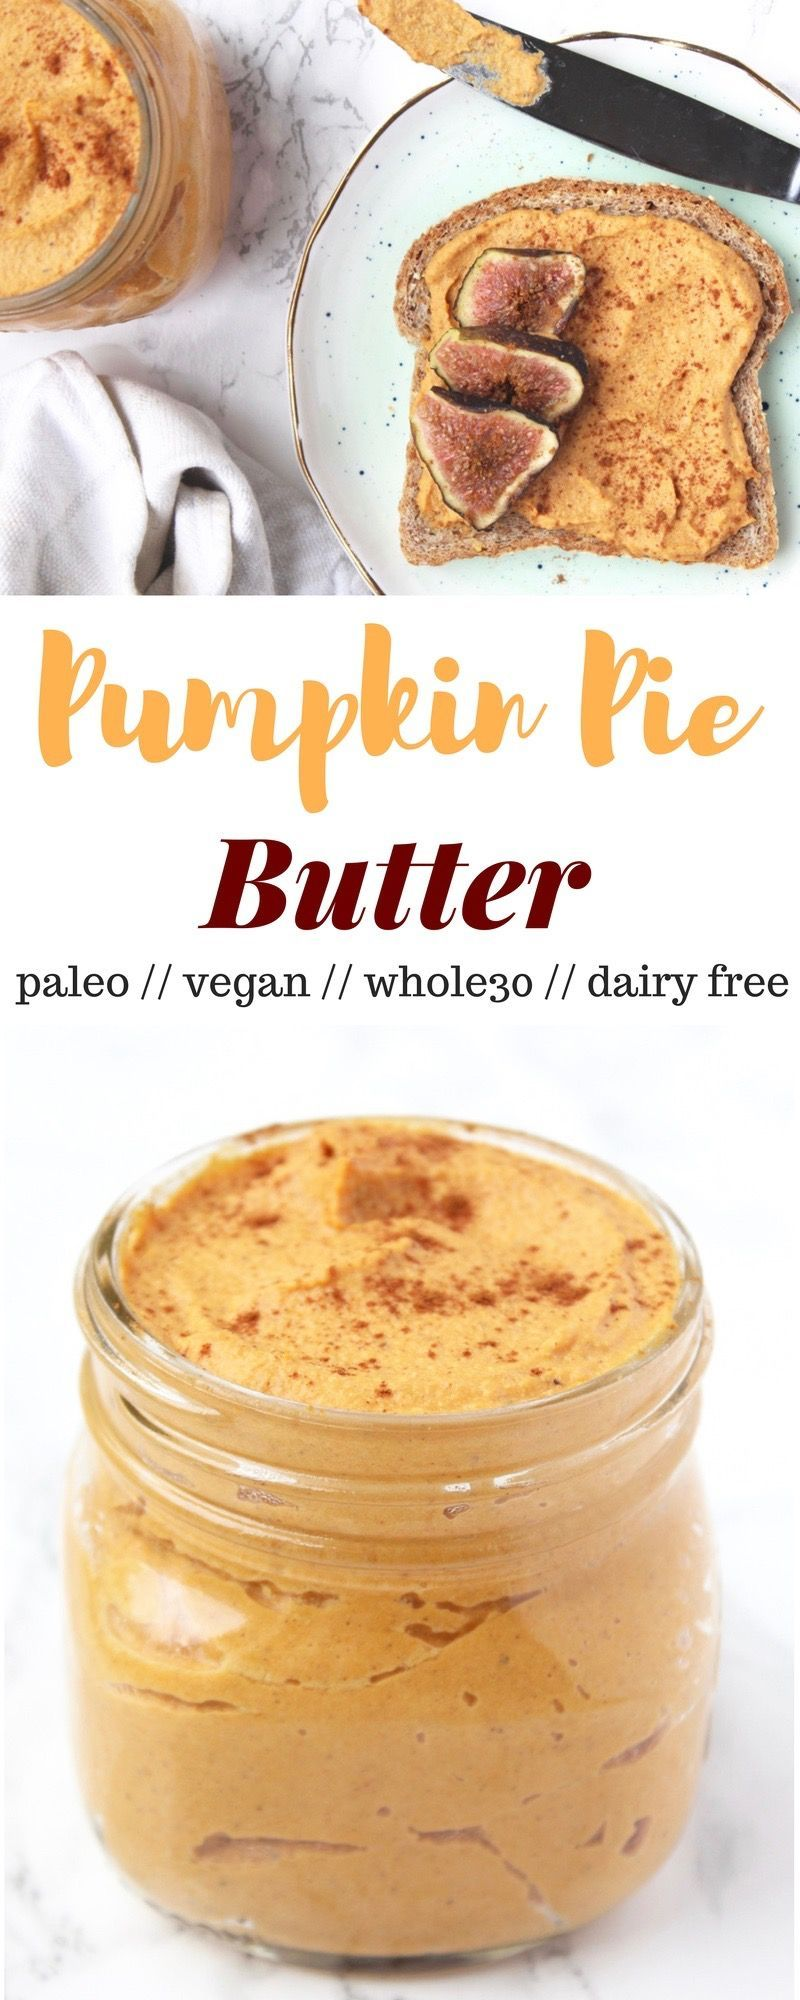 Pie Butter The taste of pumpkin pie in creamy butter form. This Pumpkin Pie Butter is perfect for spreading, dipping, and topping and it is paleo, vegan, gluten free, and Whole30! - Eat the GainsThe taste of pumpkin pie in creamy butter form. This Pumpkin Pie Butter is perfect for spreading, dipping, and topping and it is paleo, vegan, gluten free, and Whole30! - Ea...